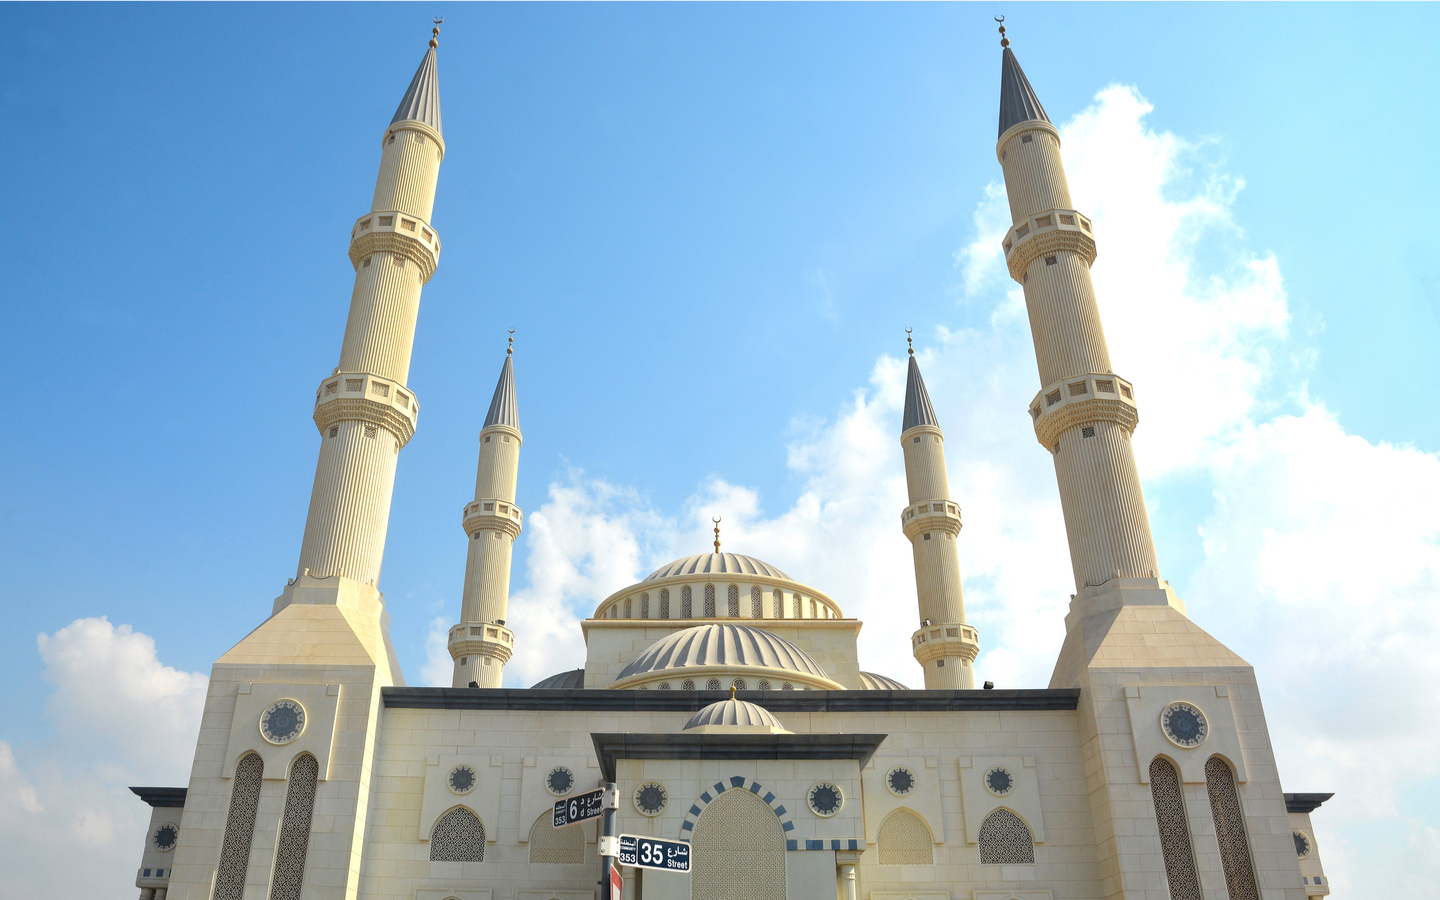 Blue mosque is the most beautiful mosque in dubai to visit and worship